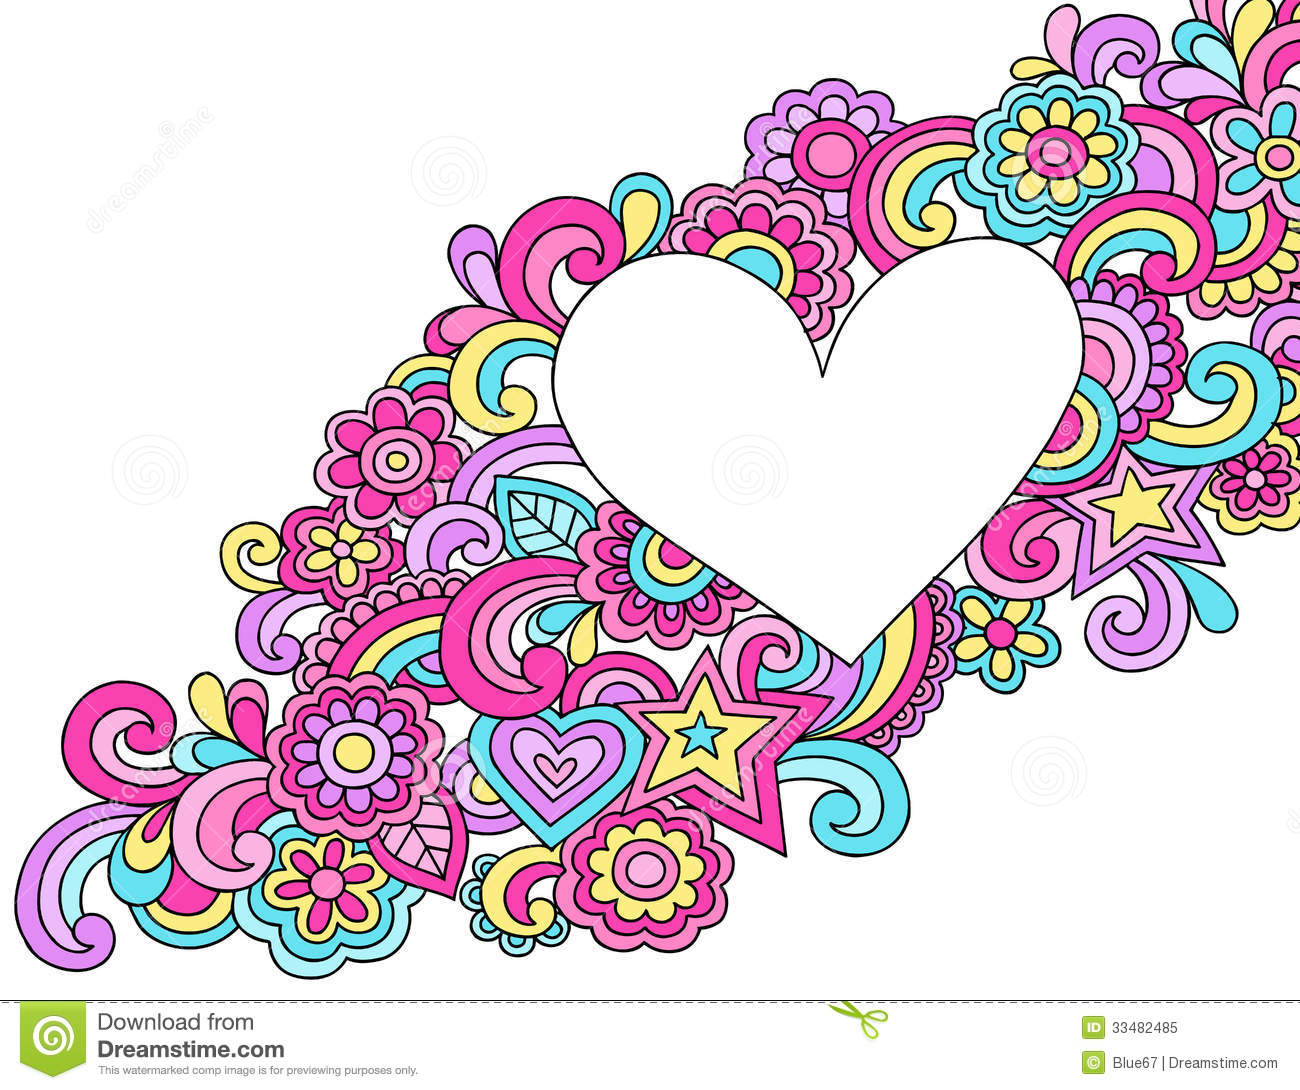 Psychedelic Heart Frame Doodle Vector Royalty Free Stock Photo   Image